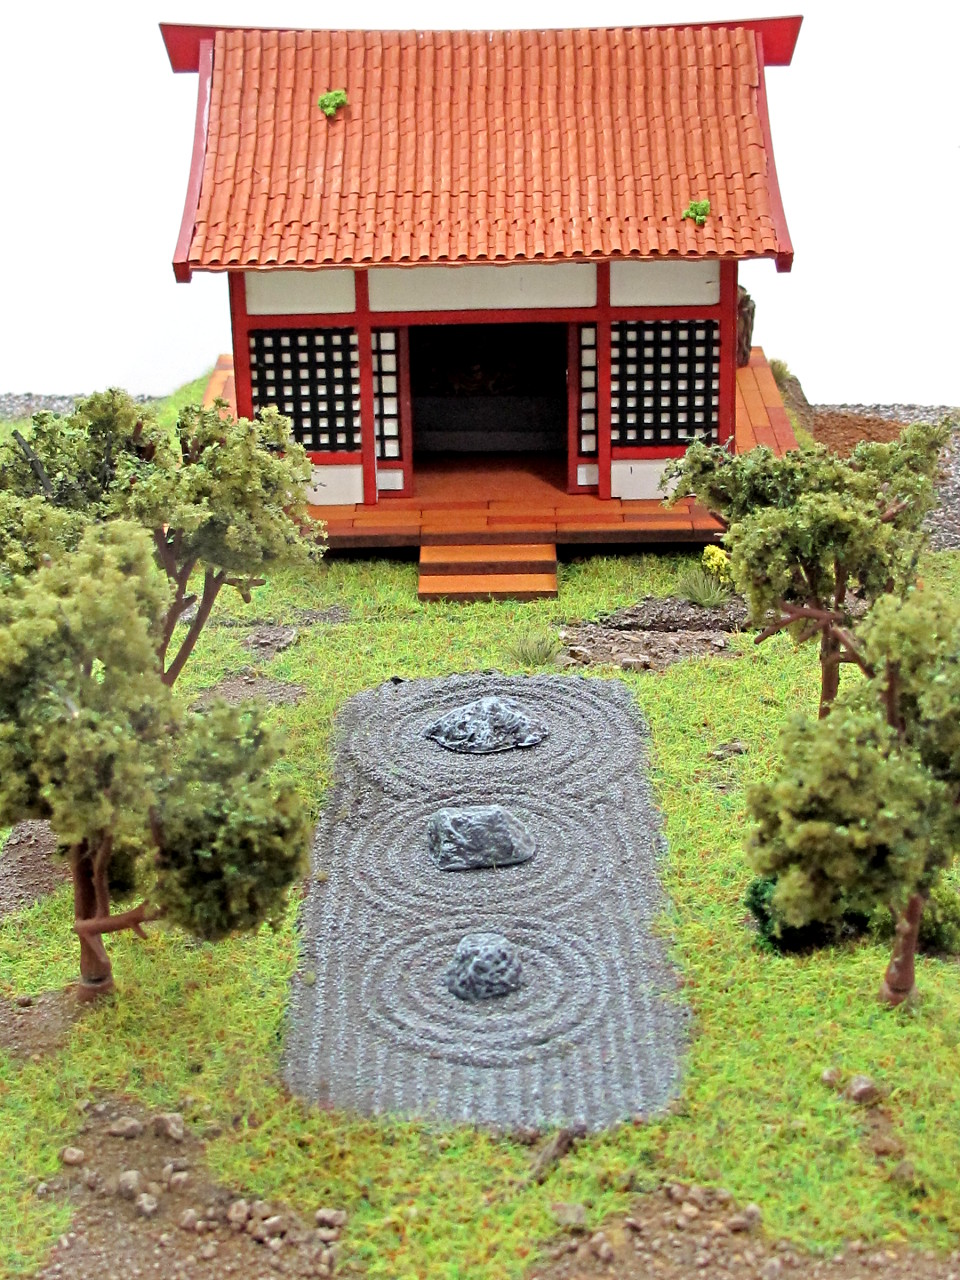 Loving the Zen garden from Andy Duffell